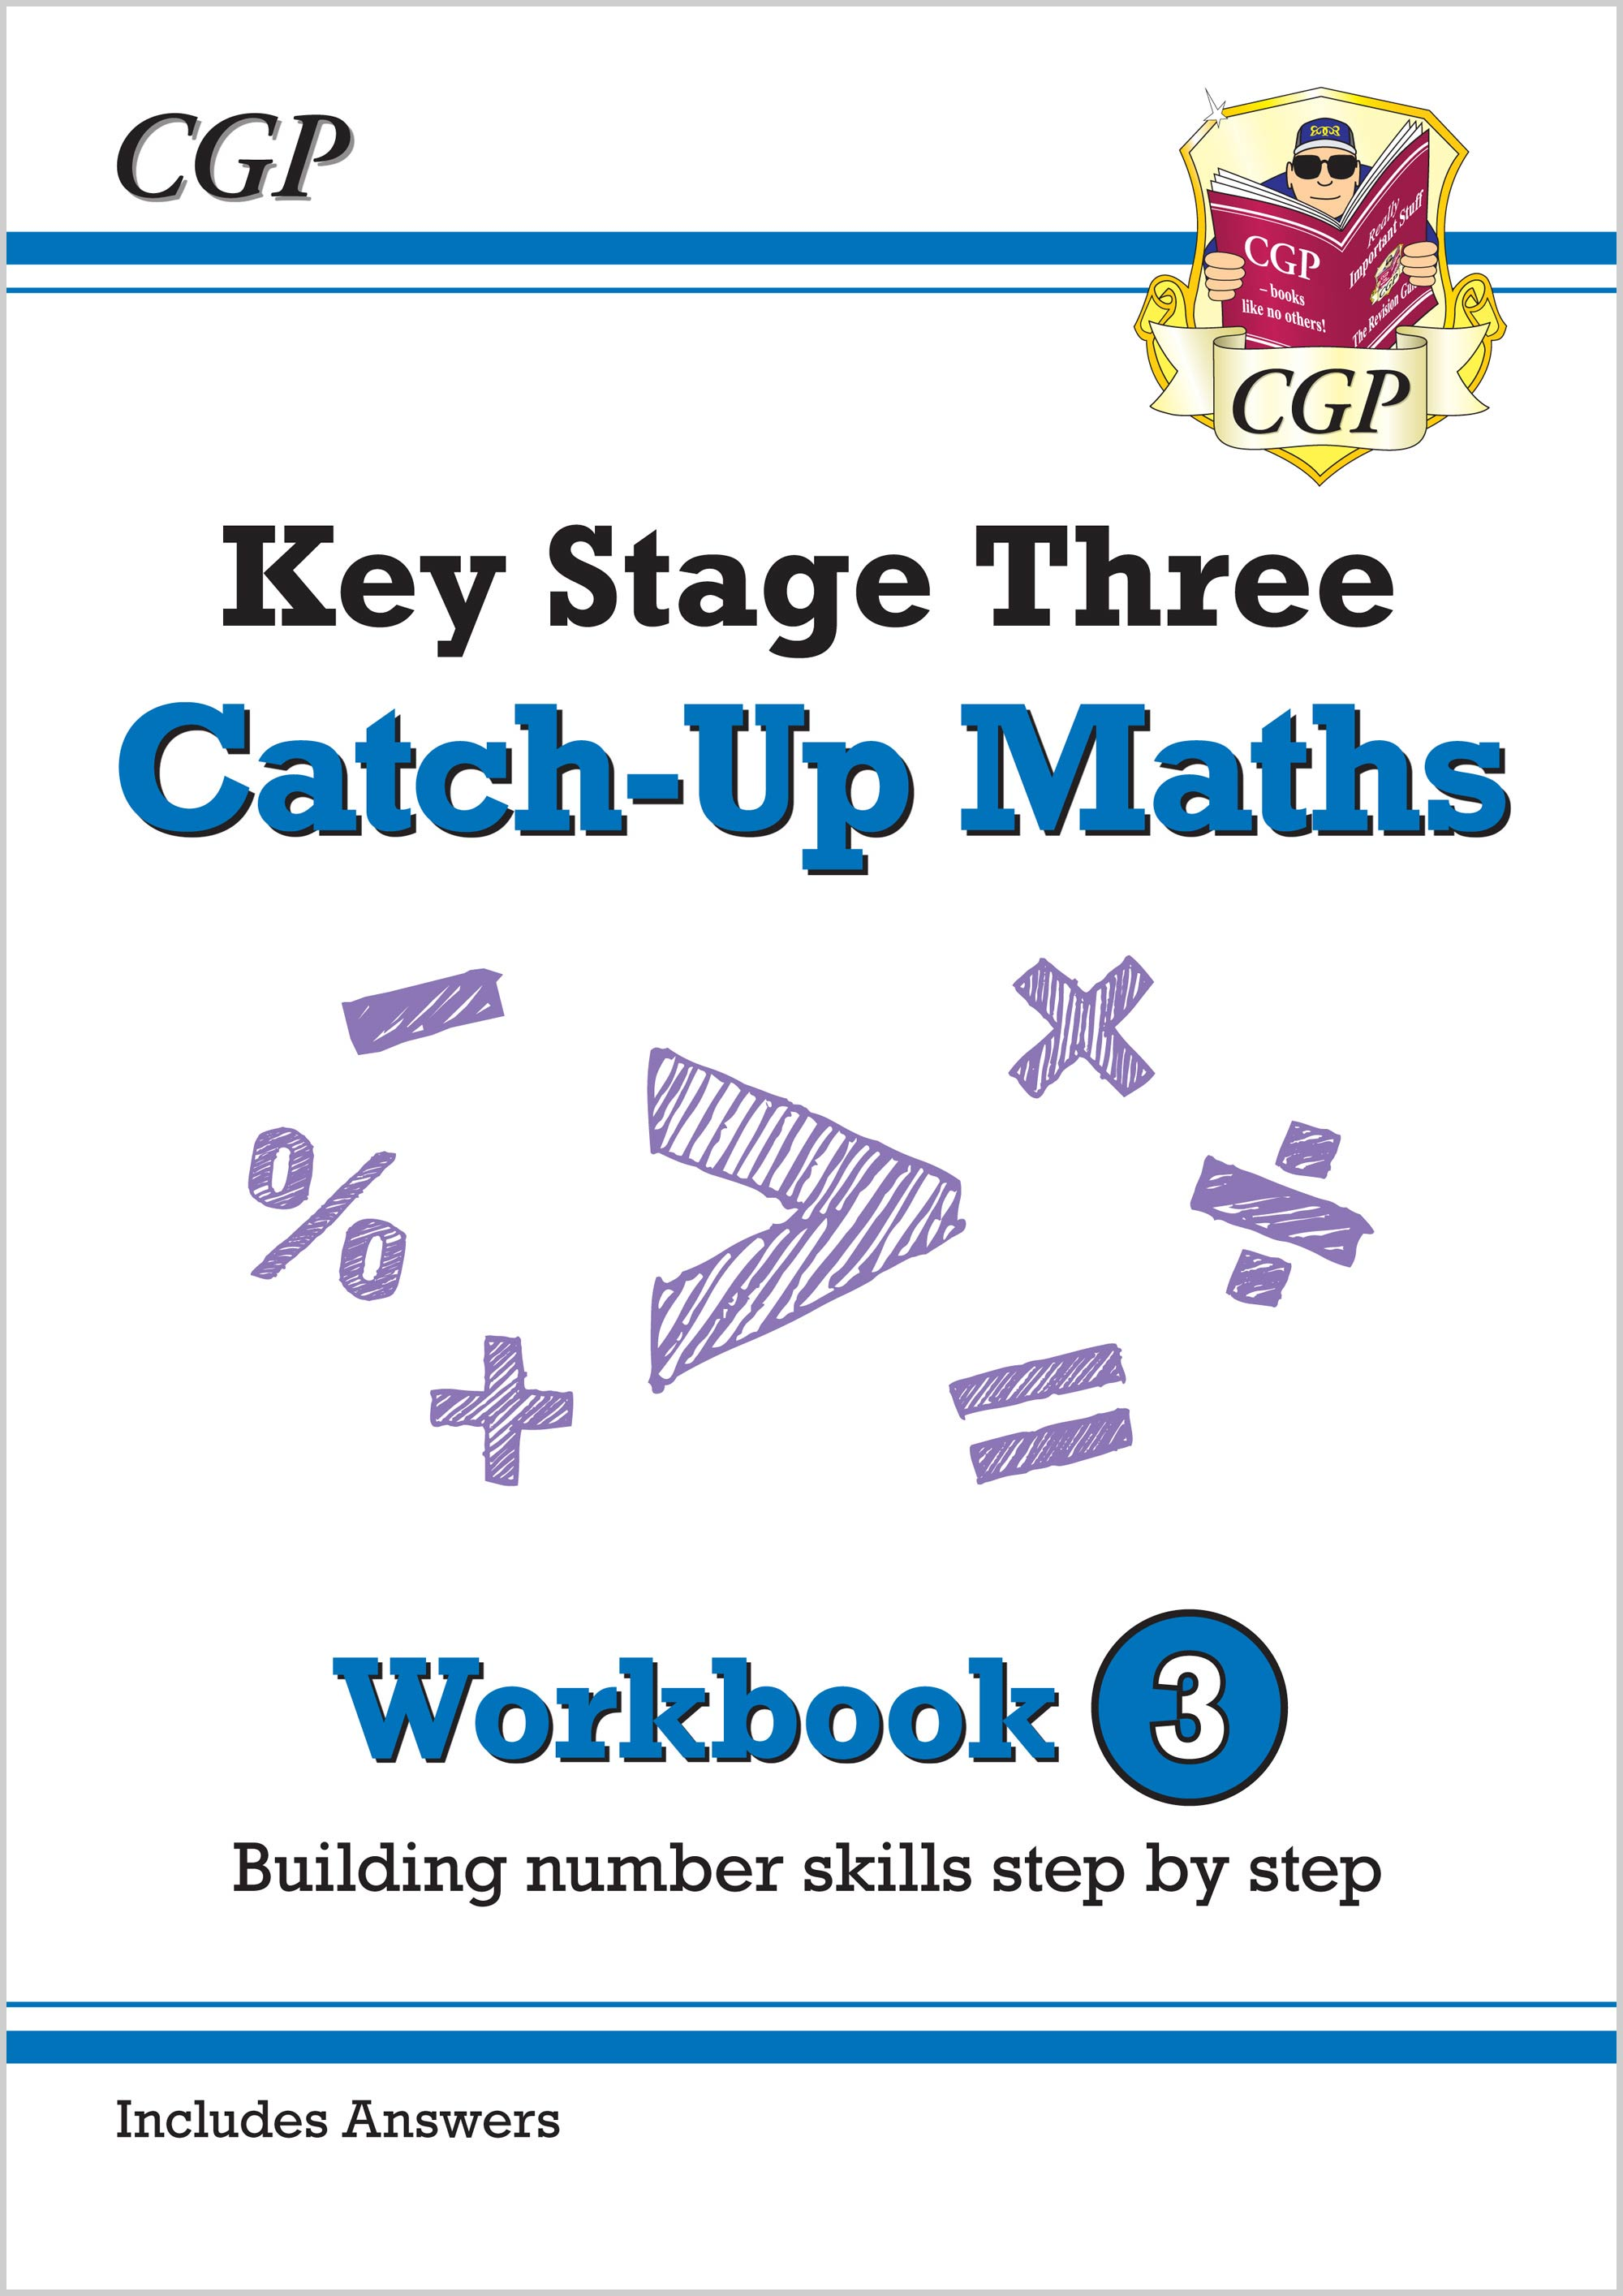 MBNW331 - KS3 Maths Catch-Up Workbook 3 (with Answers)